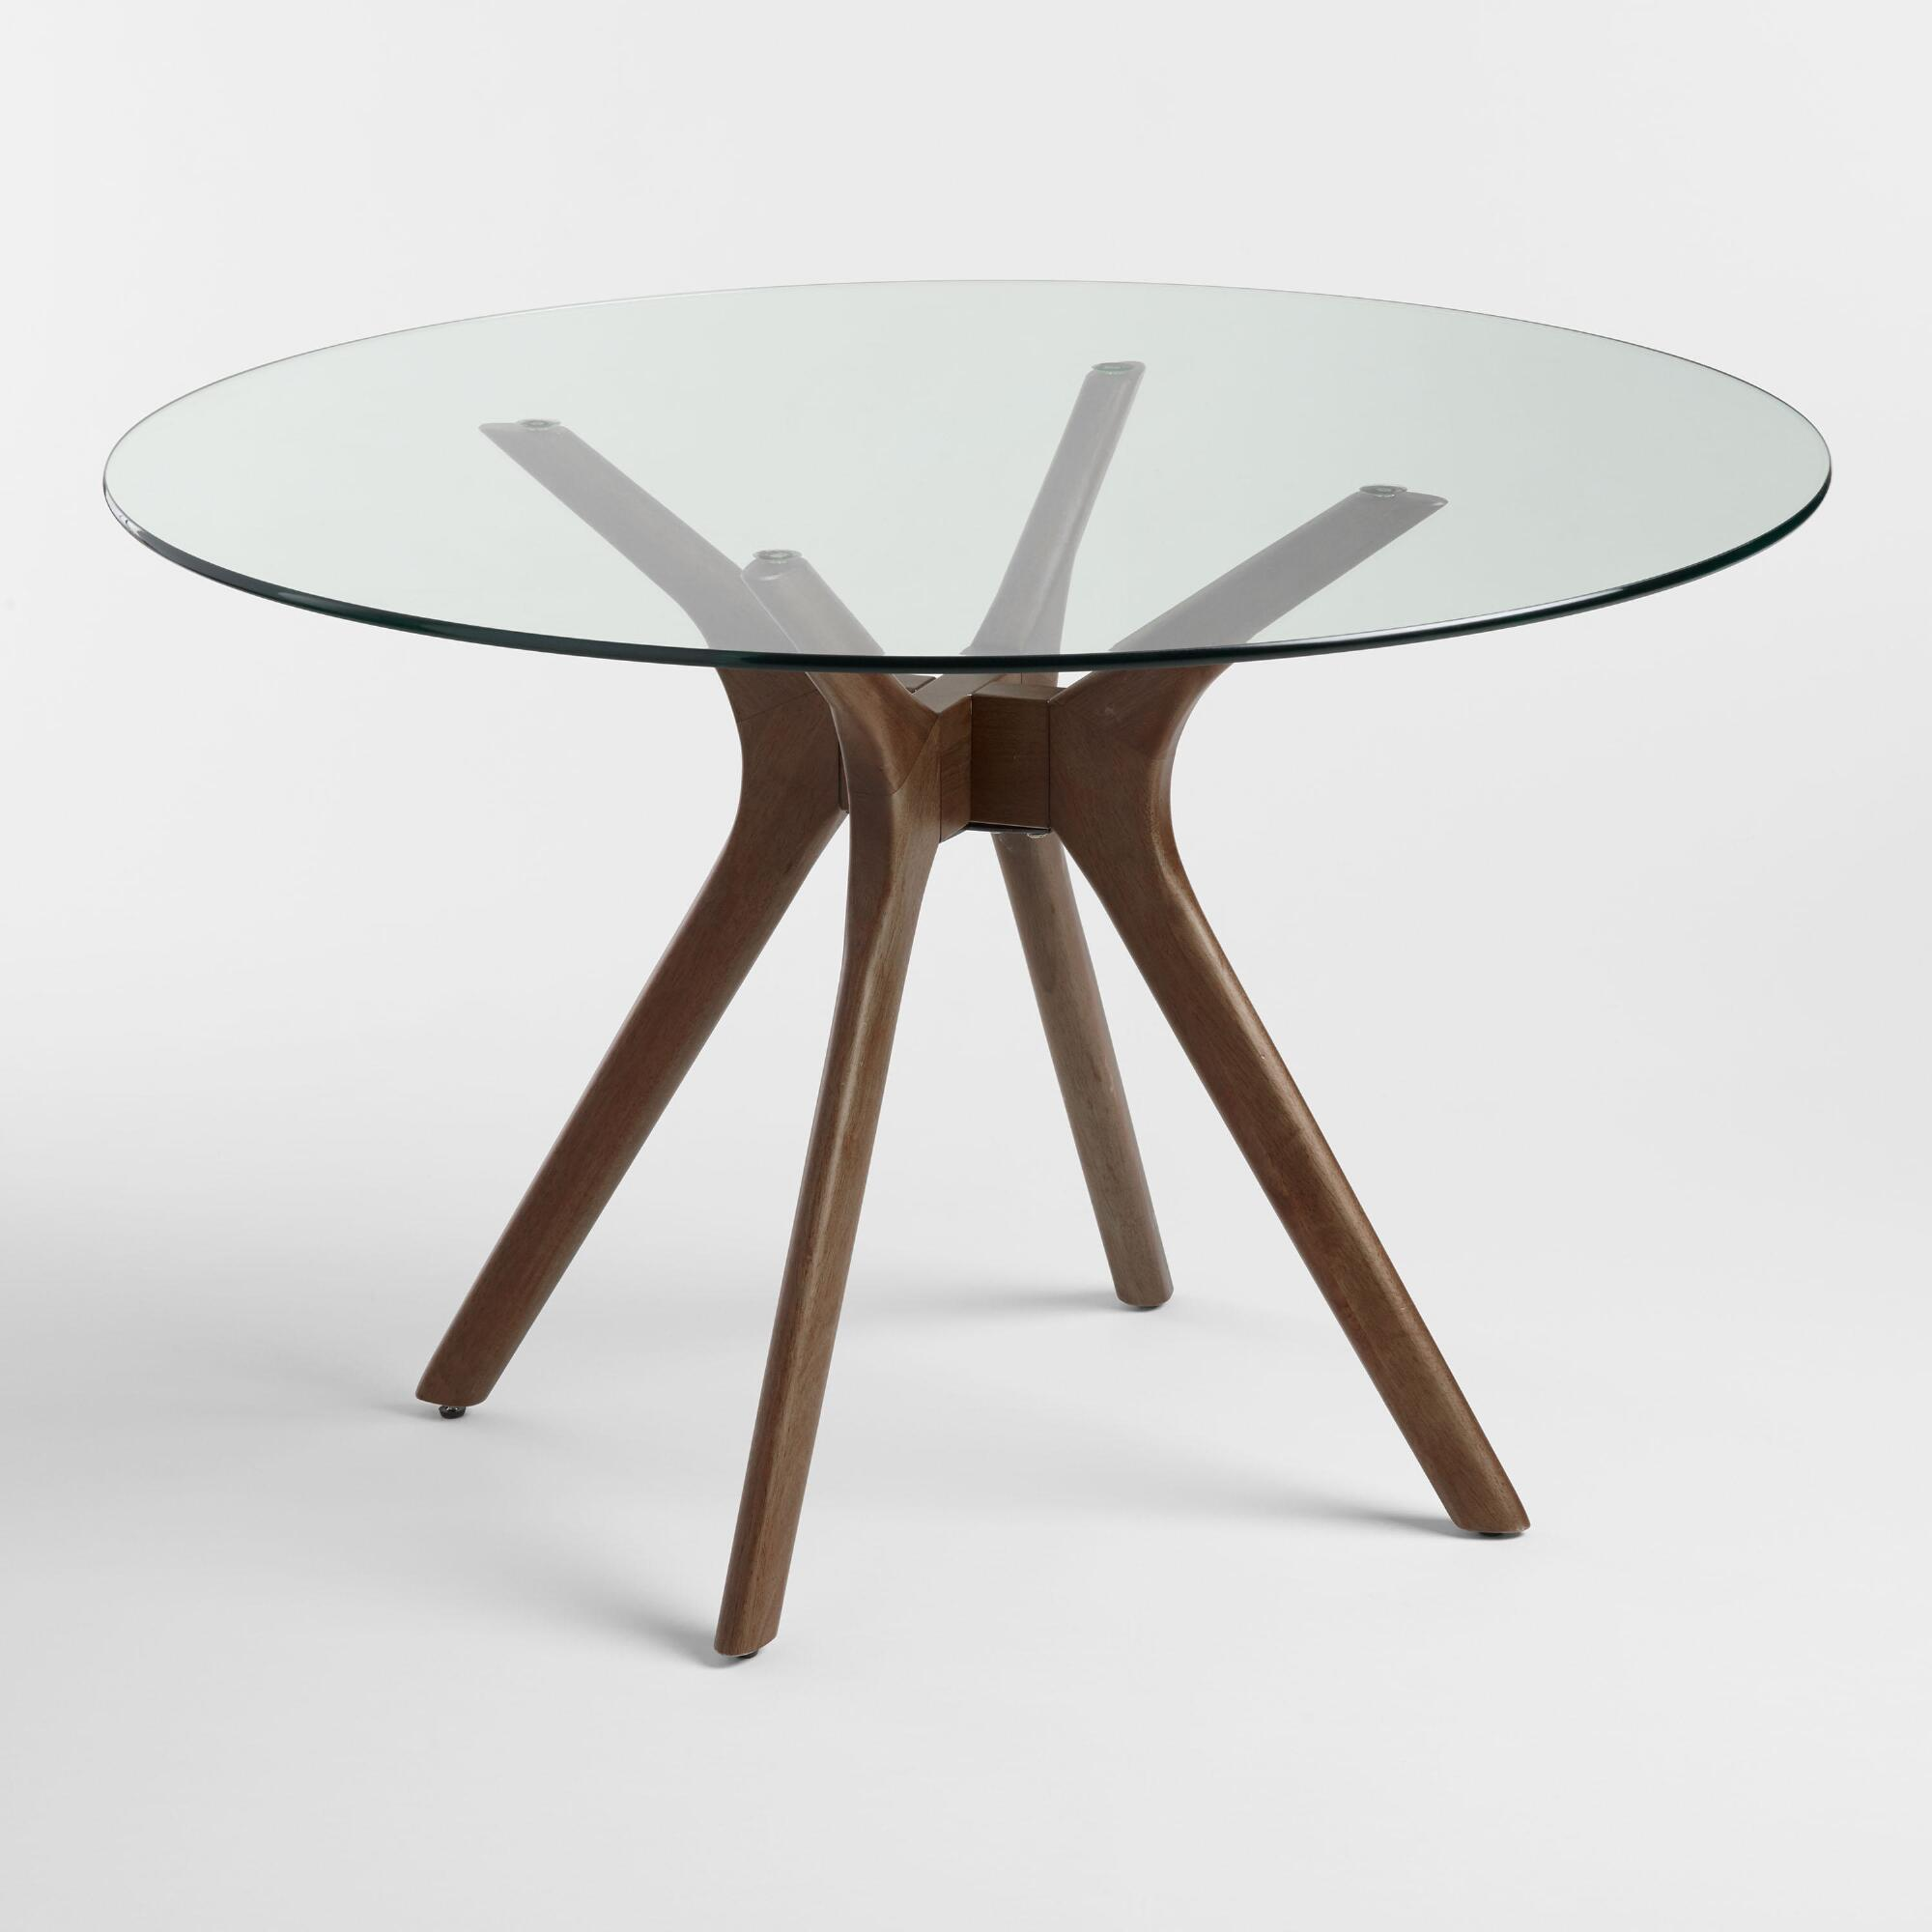 Round Glass Top Briana Table: Brown - Wood - Small by World Market